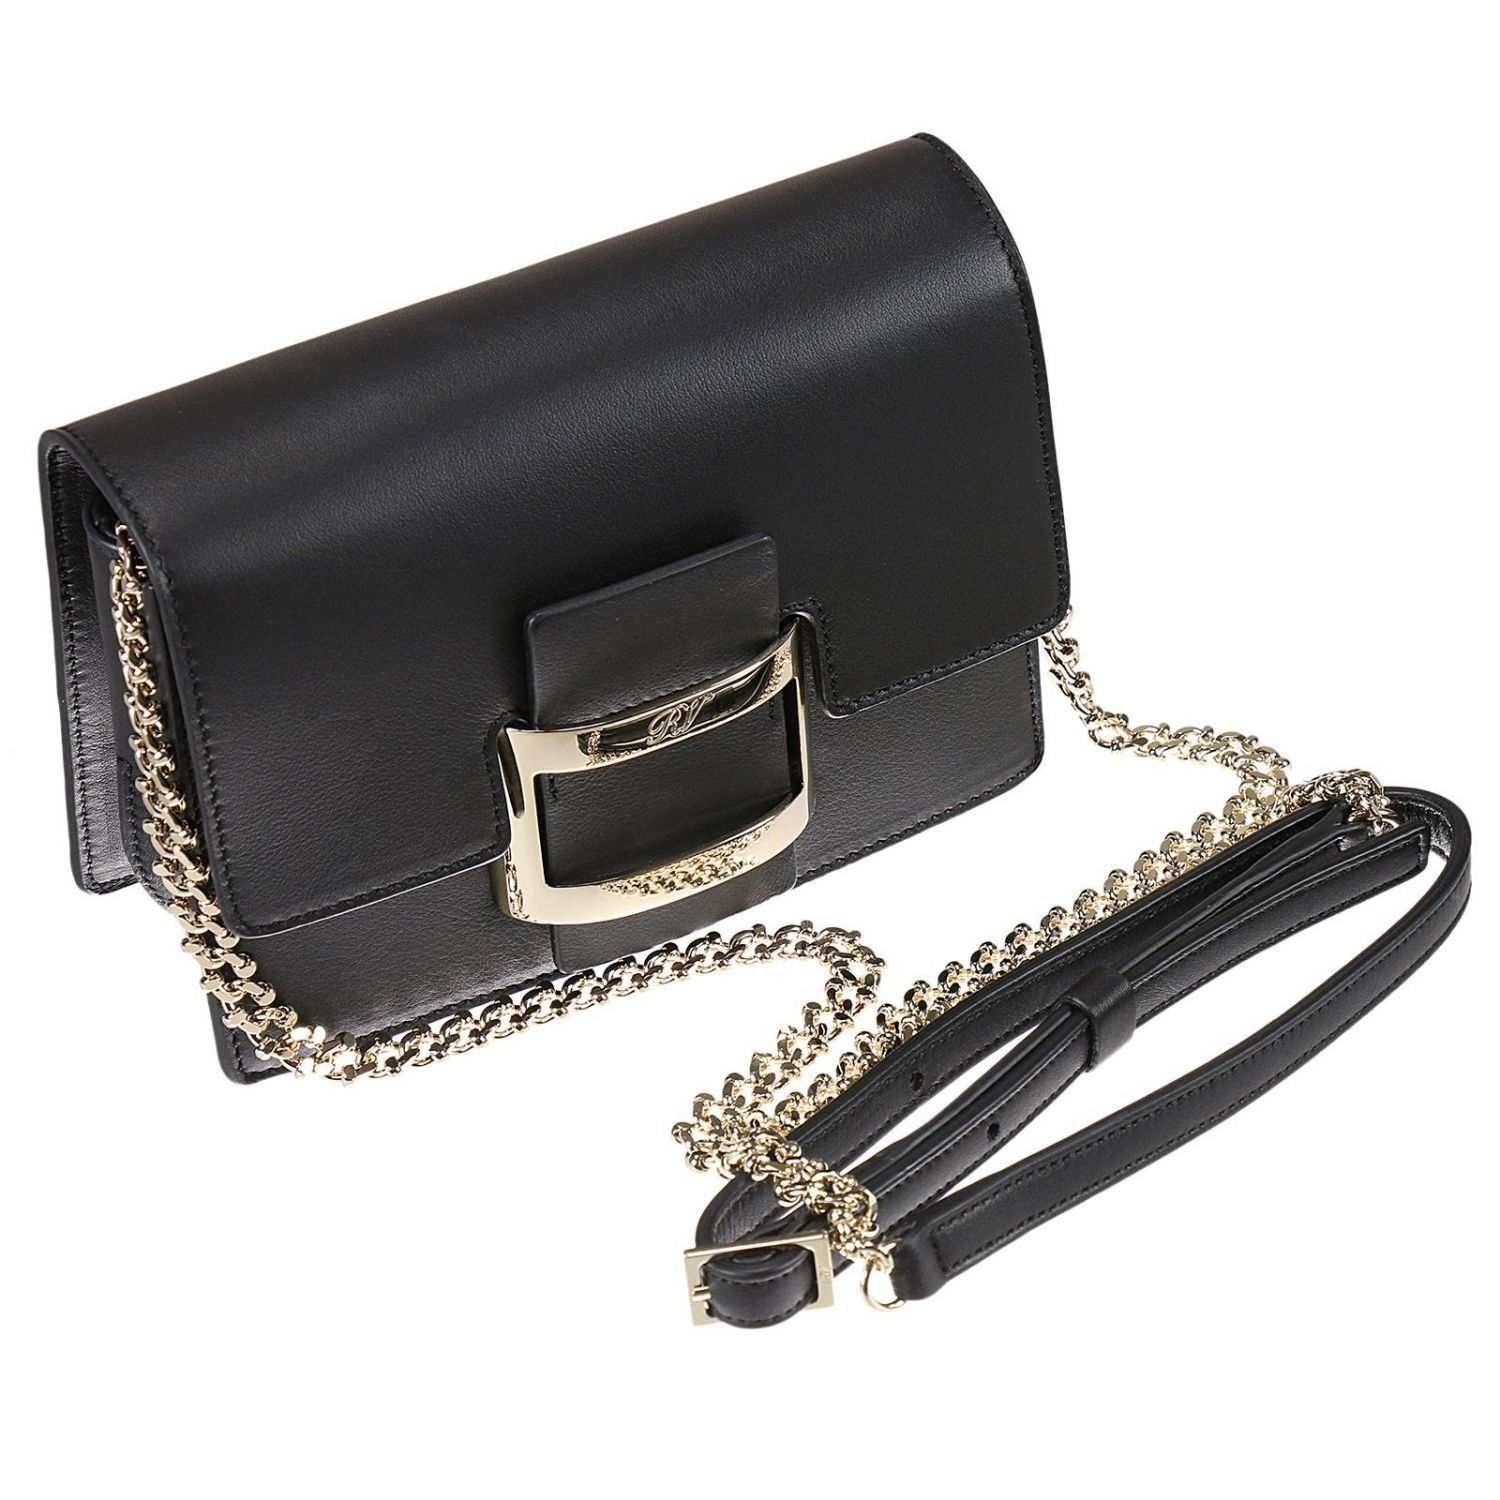 送料込 Mini Bag Handbag Woman Roger Vivier バッグ